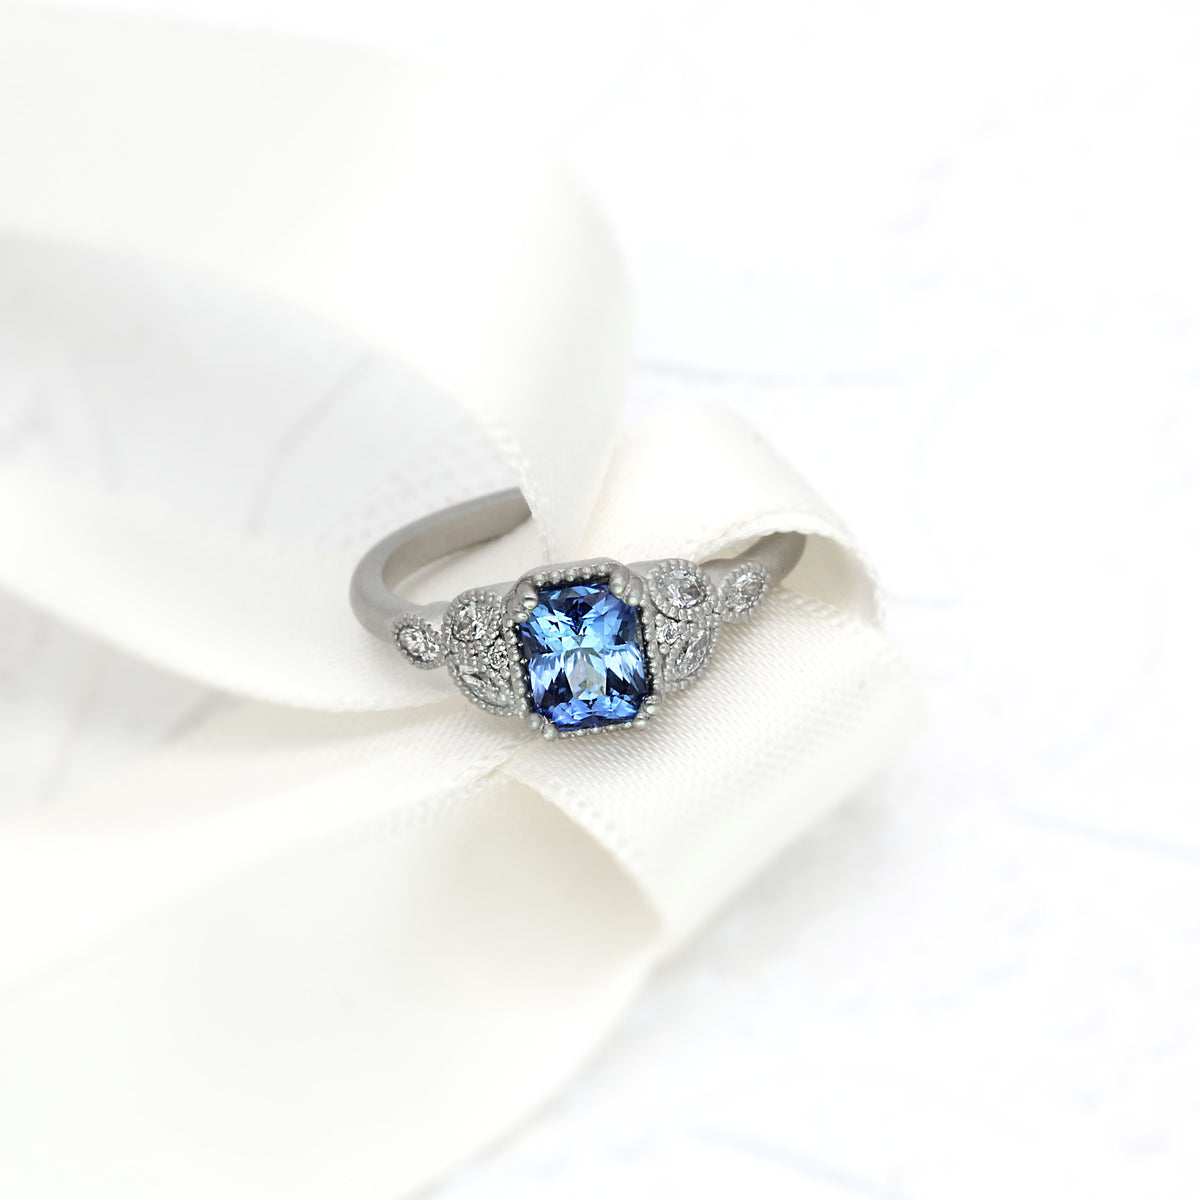 Elle - Cornflower Blue Sapphire Vintage Inspired Engagement Ring | Platinum